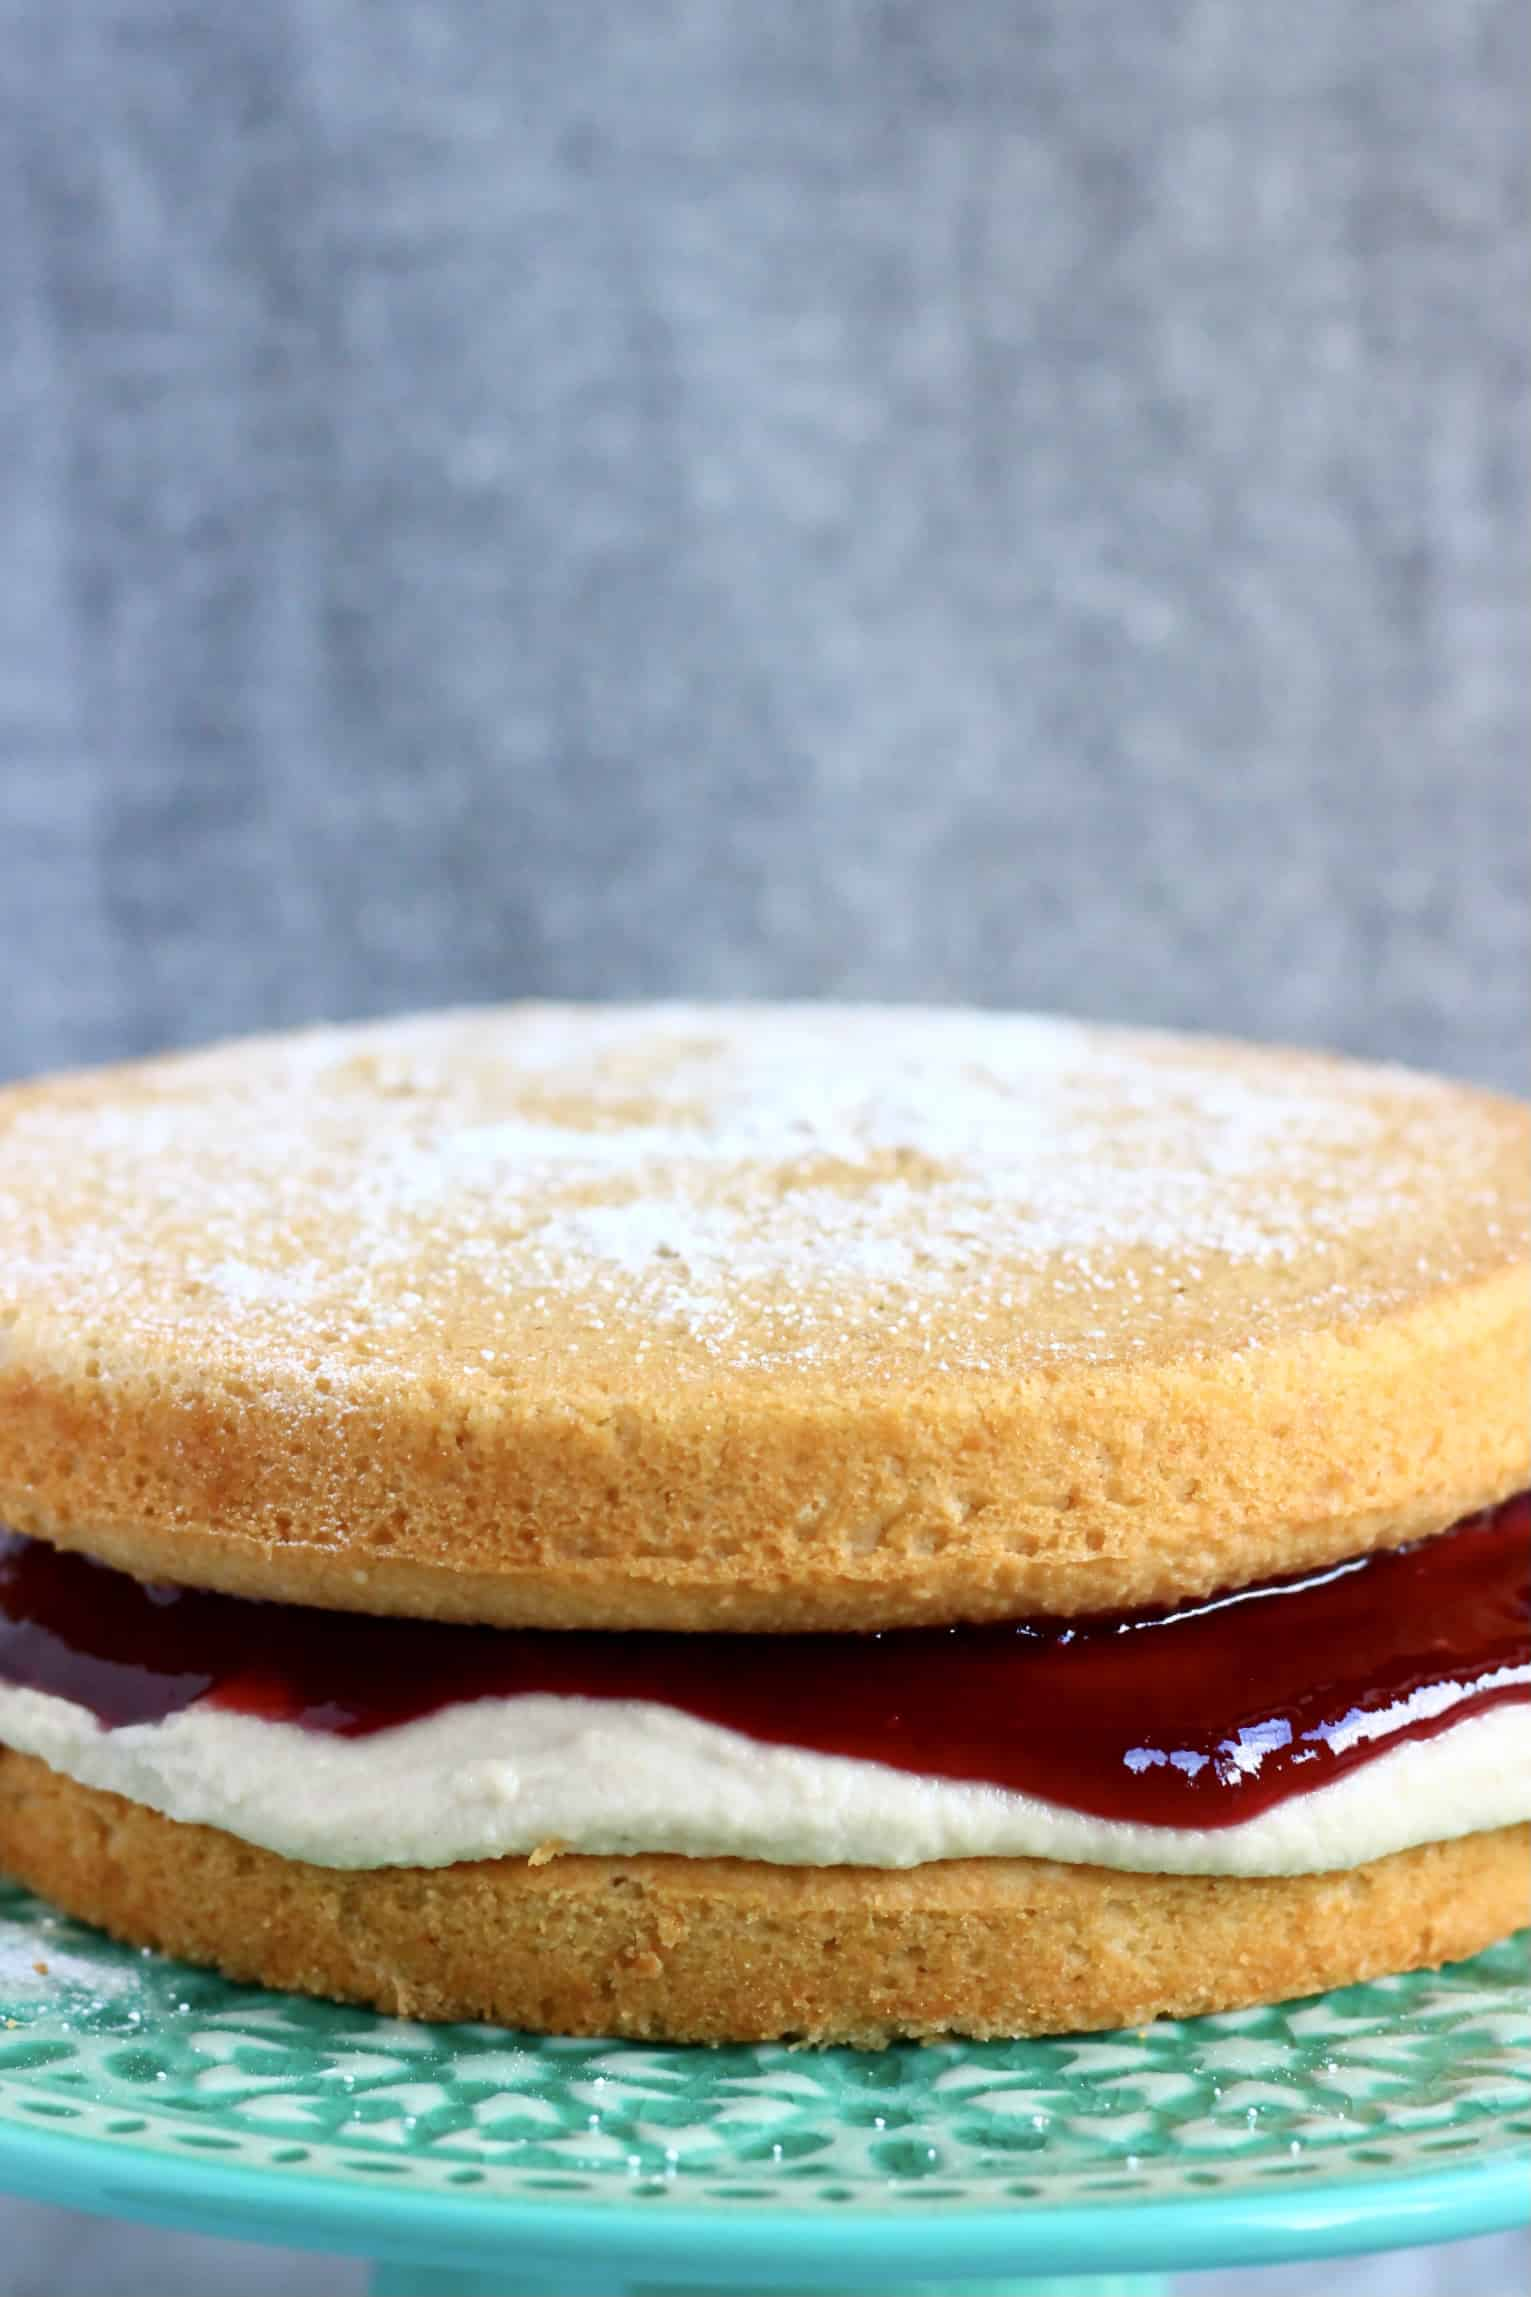 A gluten-free vegan Victoria sponge cake with buttercream and jam on a cake stand